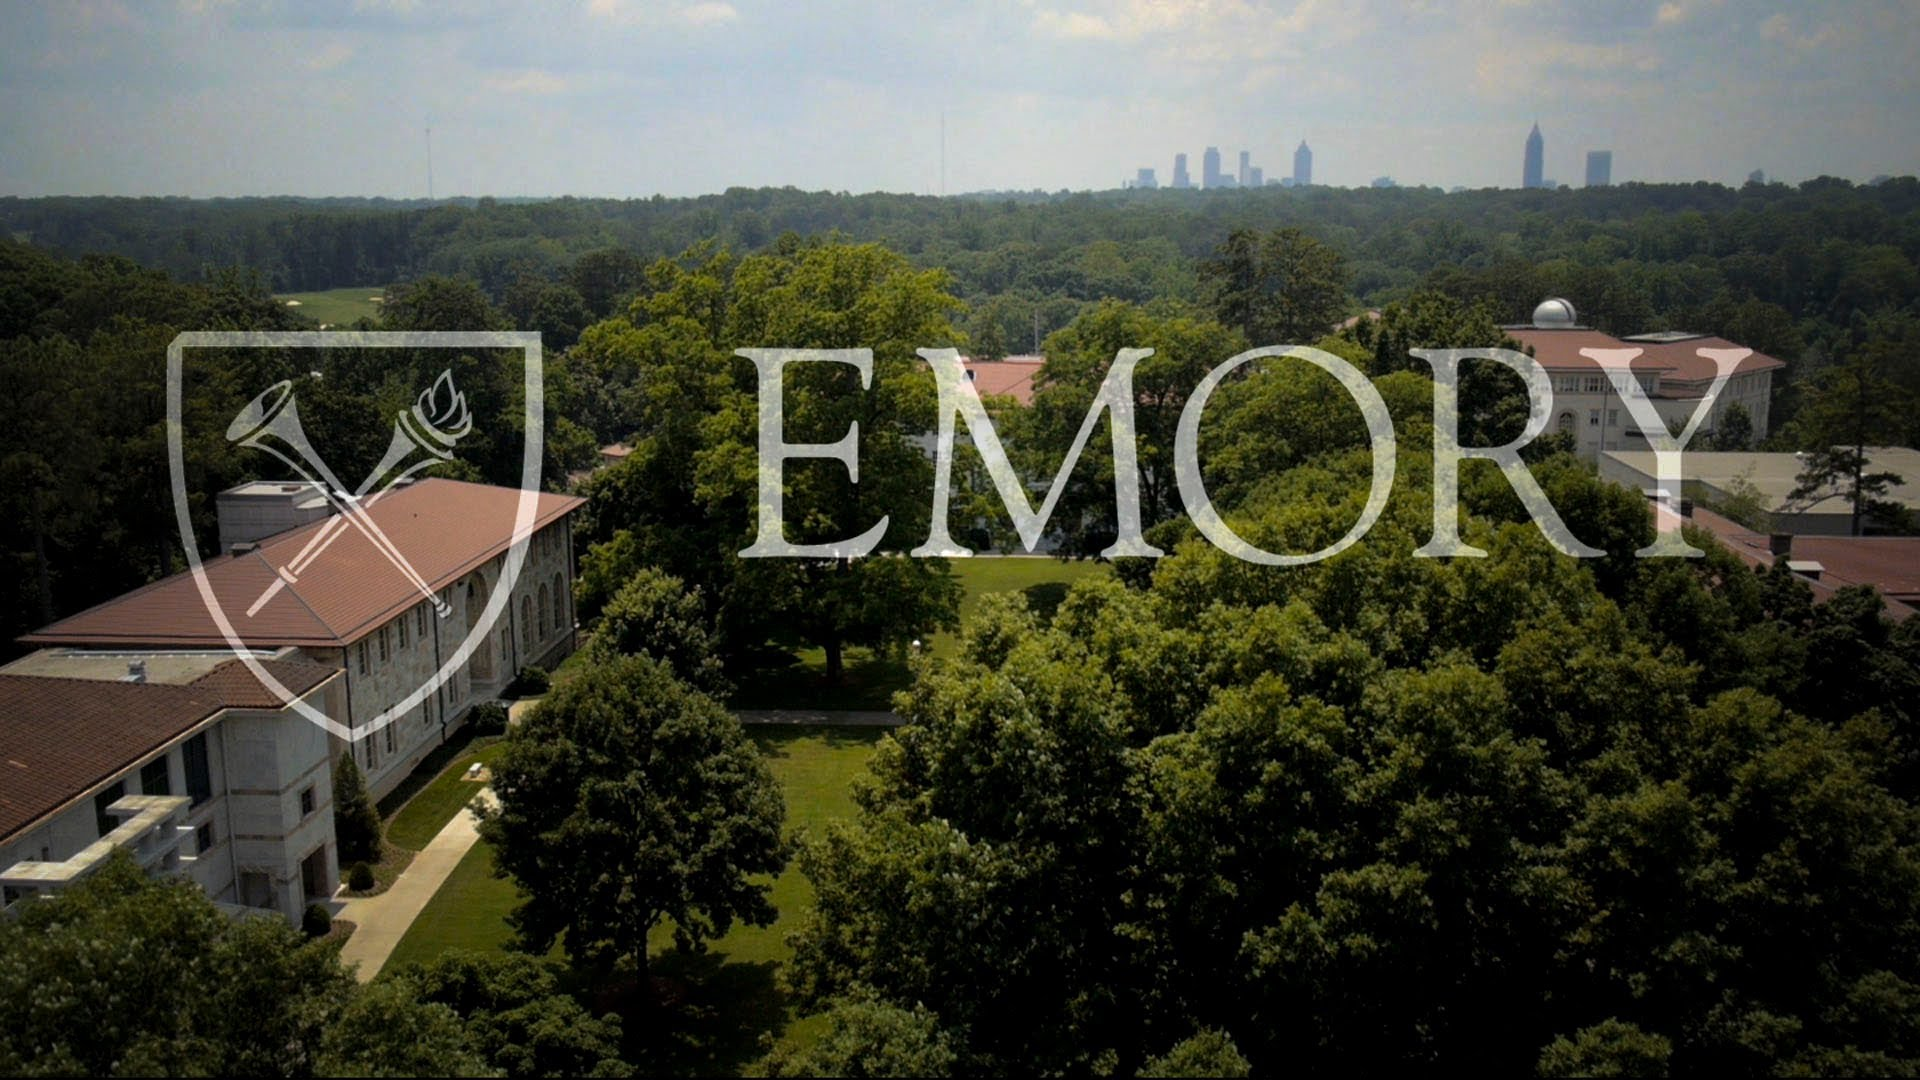 Emory University to continue support for undocumented students https://t.co/3CMK6uf7H4 https://t.co/dIYoXjAl44